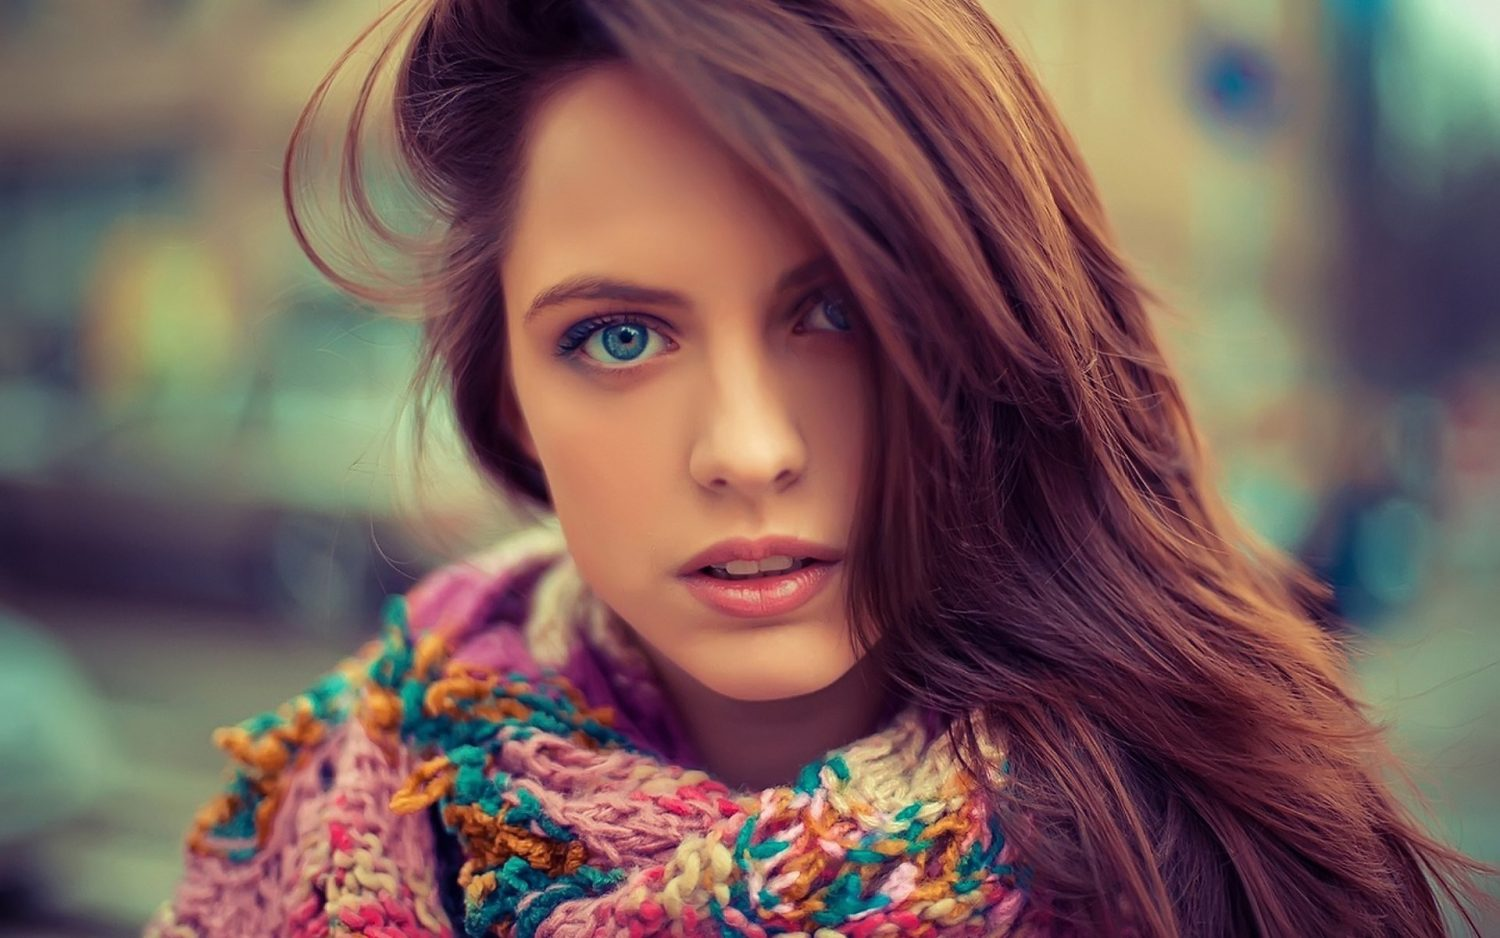 beautiful_girls_photography_tumblr_cool_wallpapers